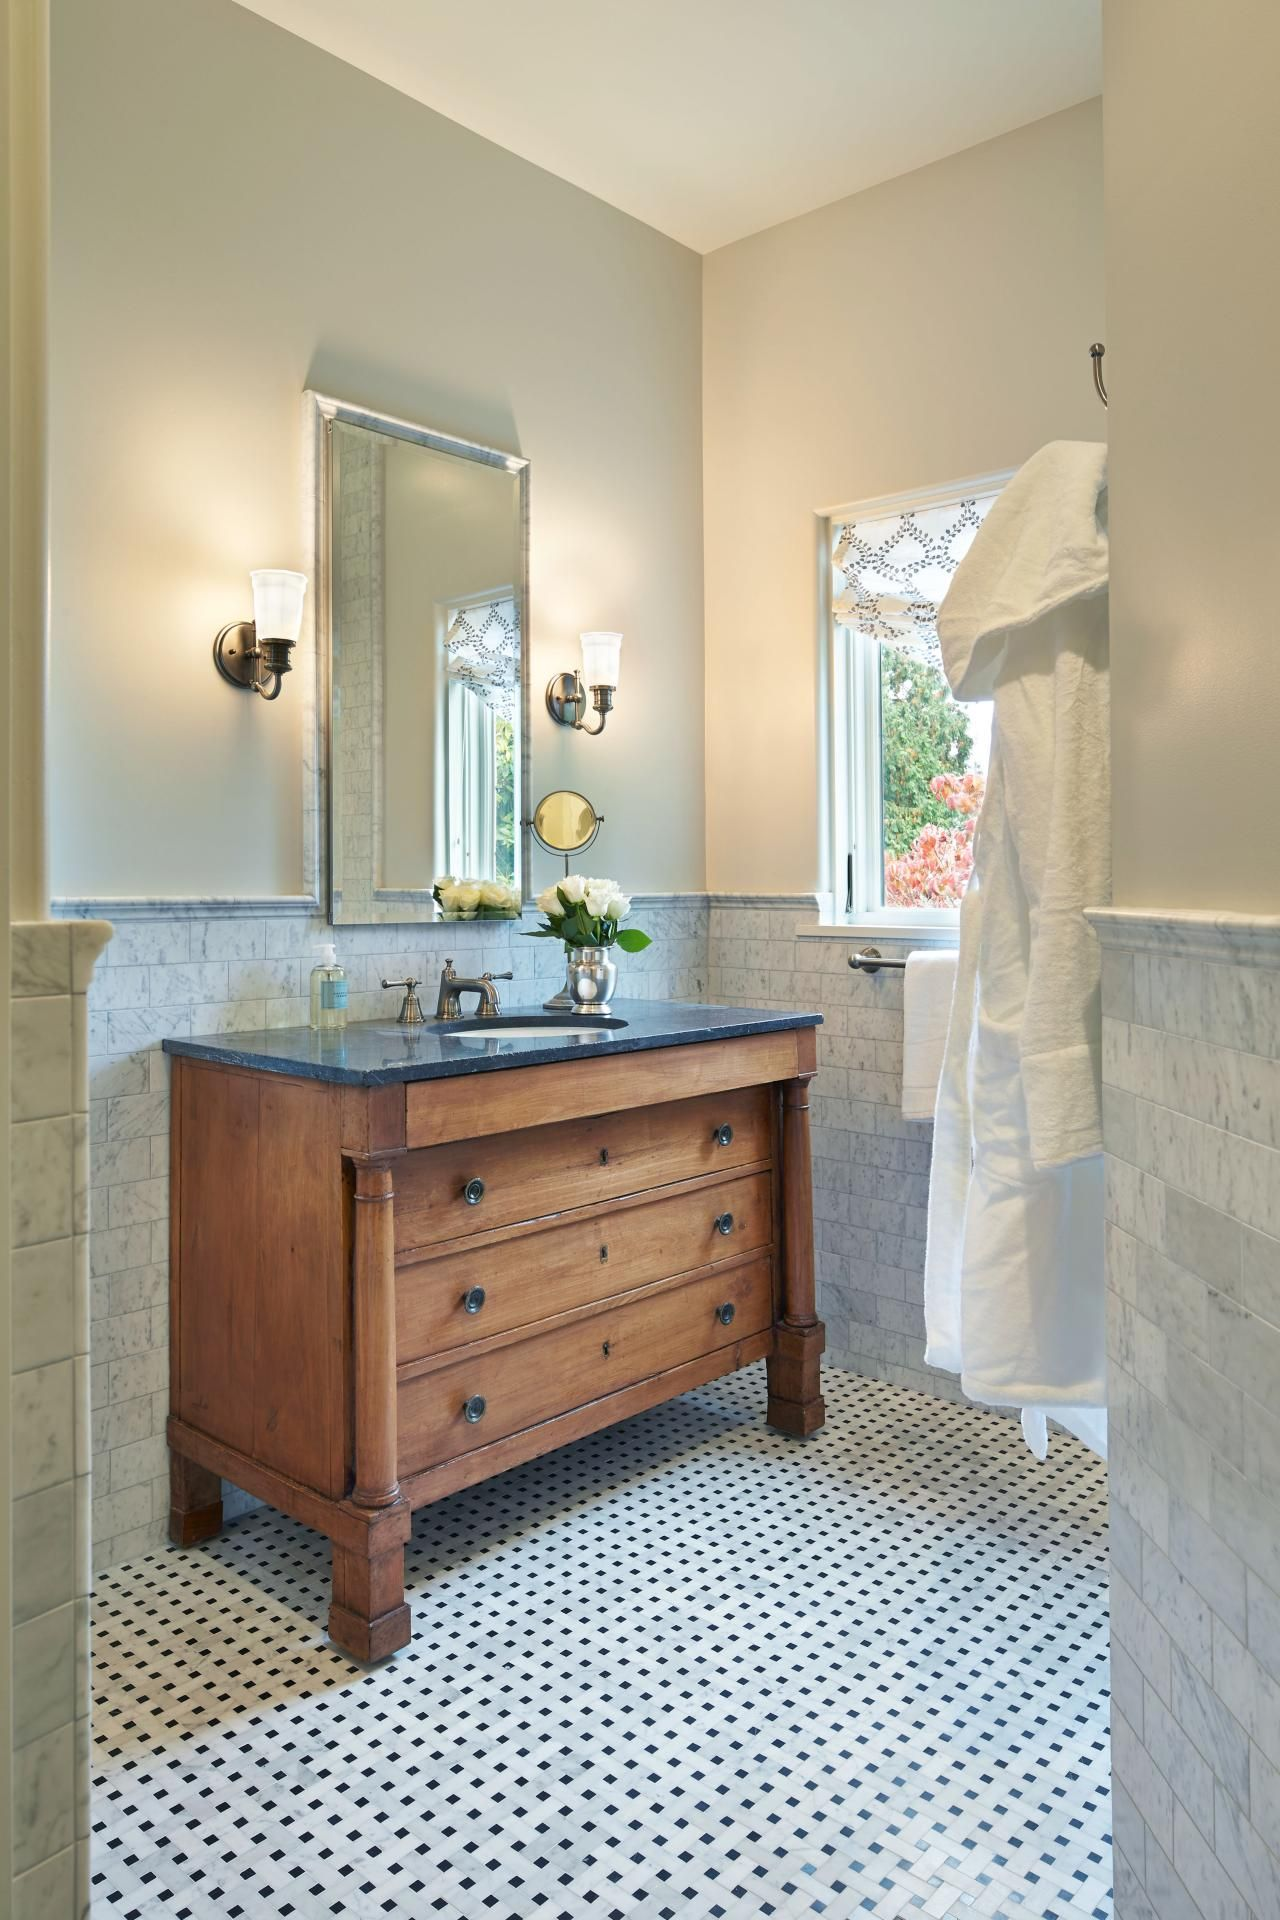 Black and white basket weave tile floors and a marble tile black and white basket weave tile floors and a marble tile backsplash create a classic dailygadgetfo Image collections